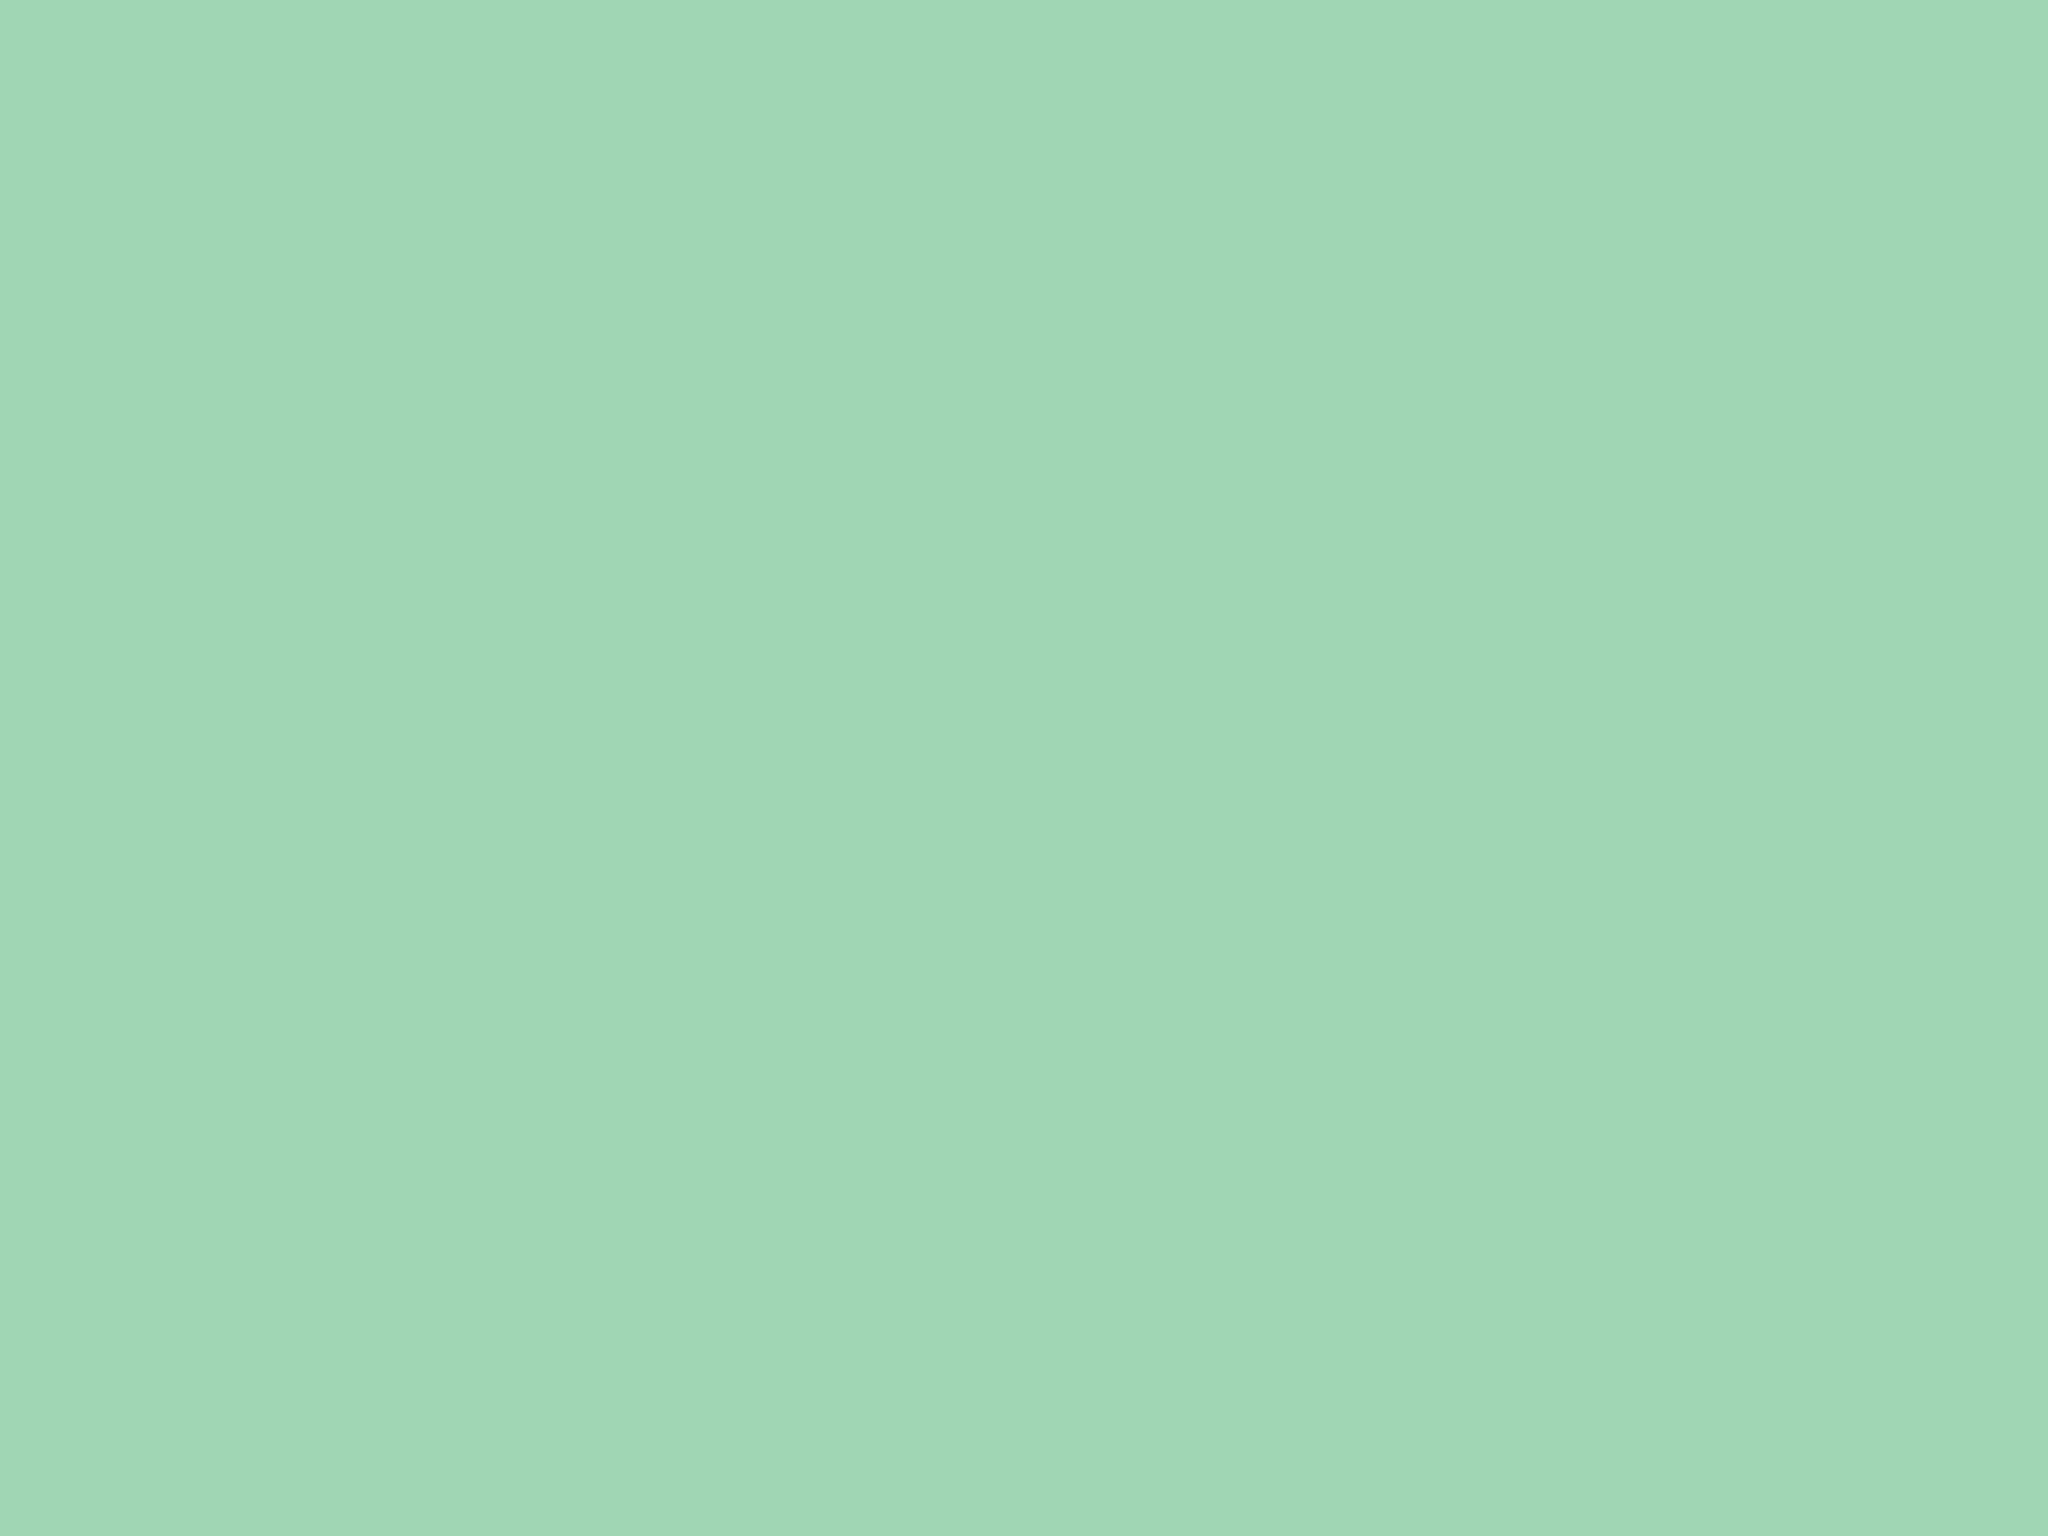 2048x1536 Turquoise Green Solid Color Background